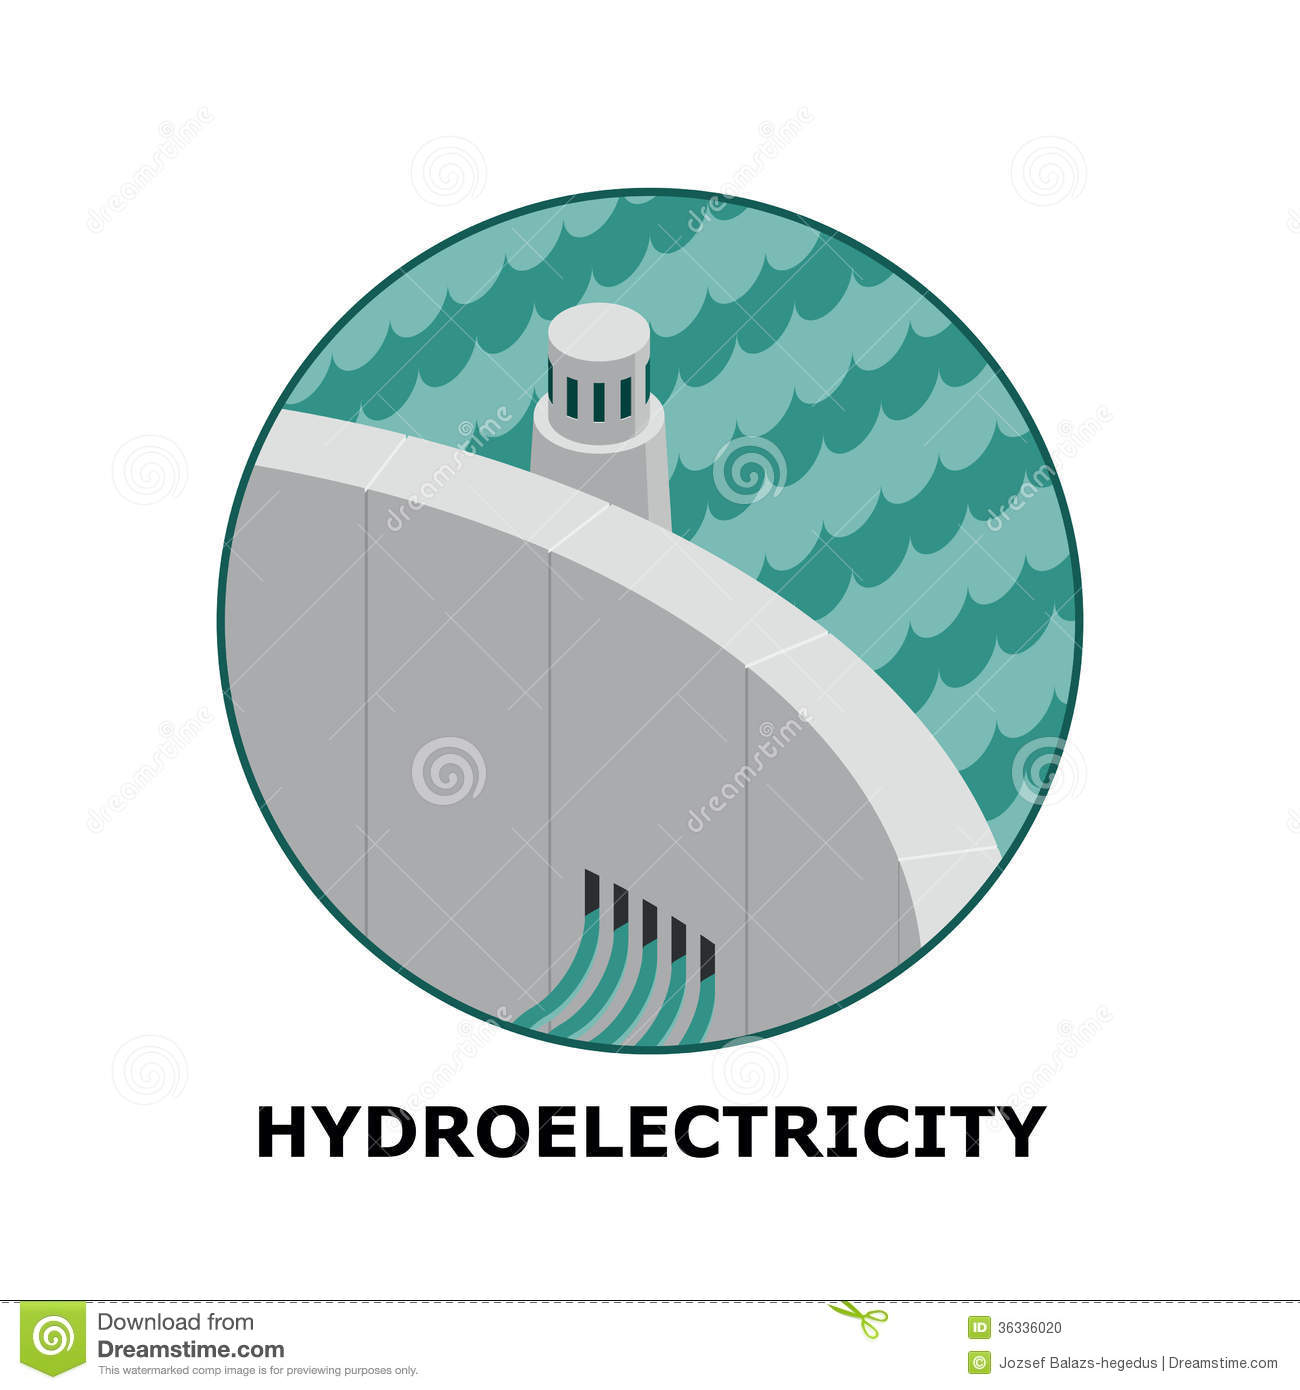 Hydroelectricity, Renewable Energy Sources - Part